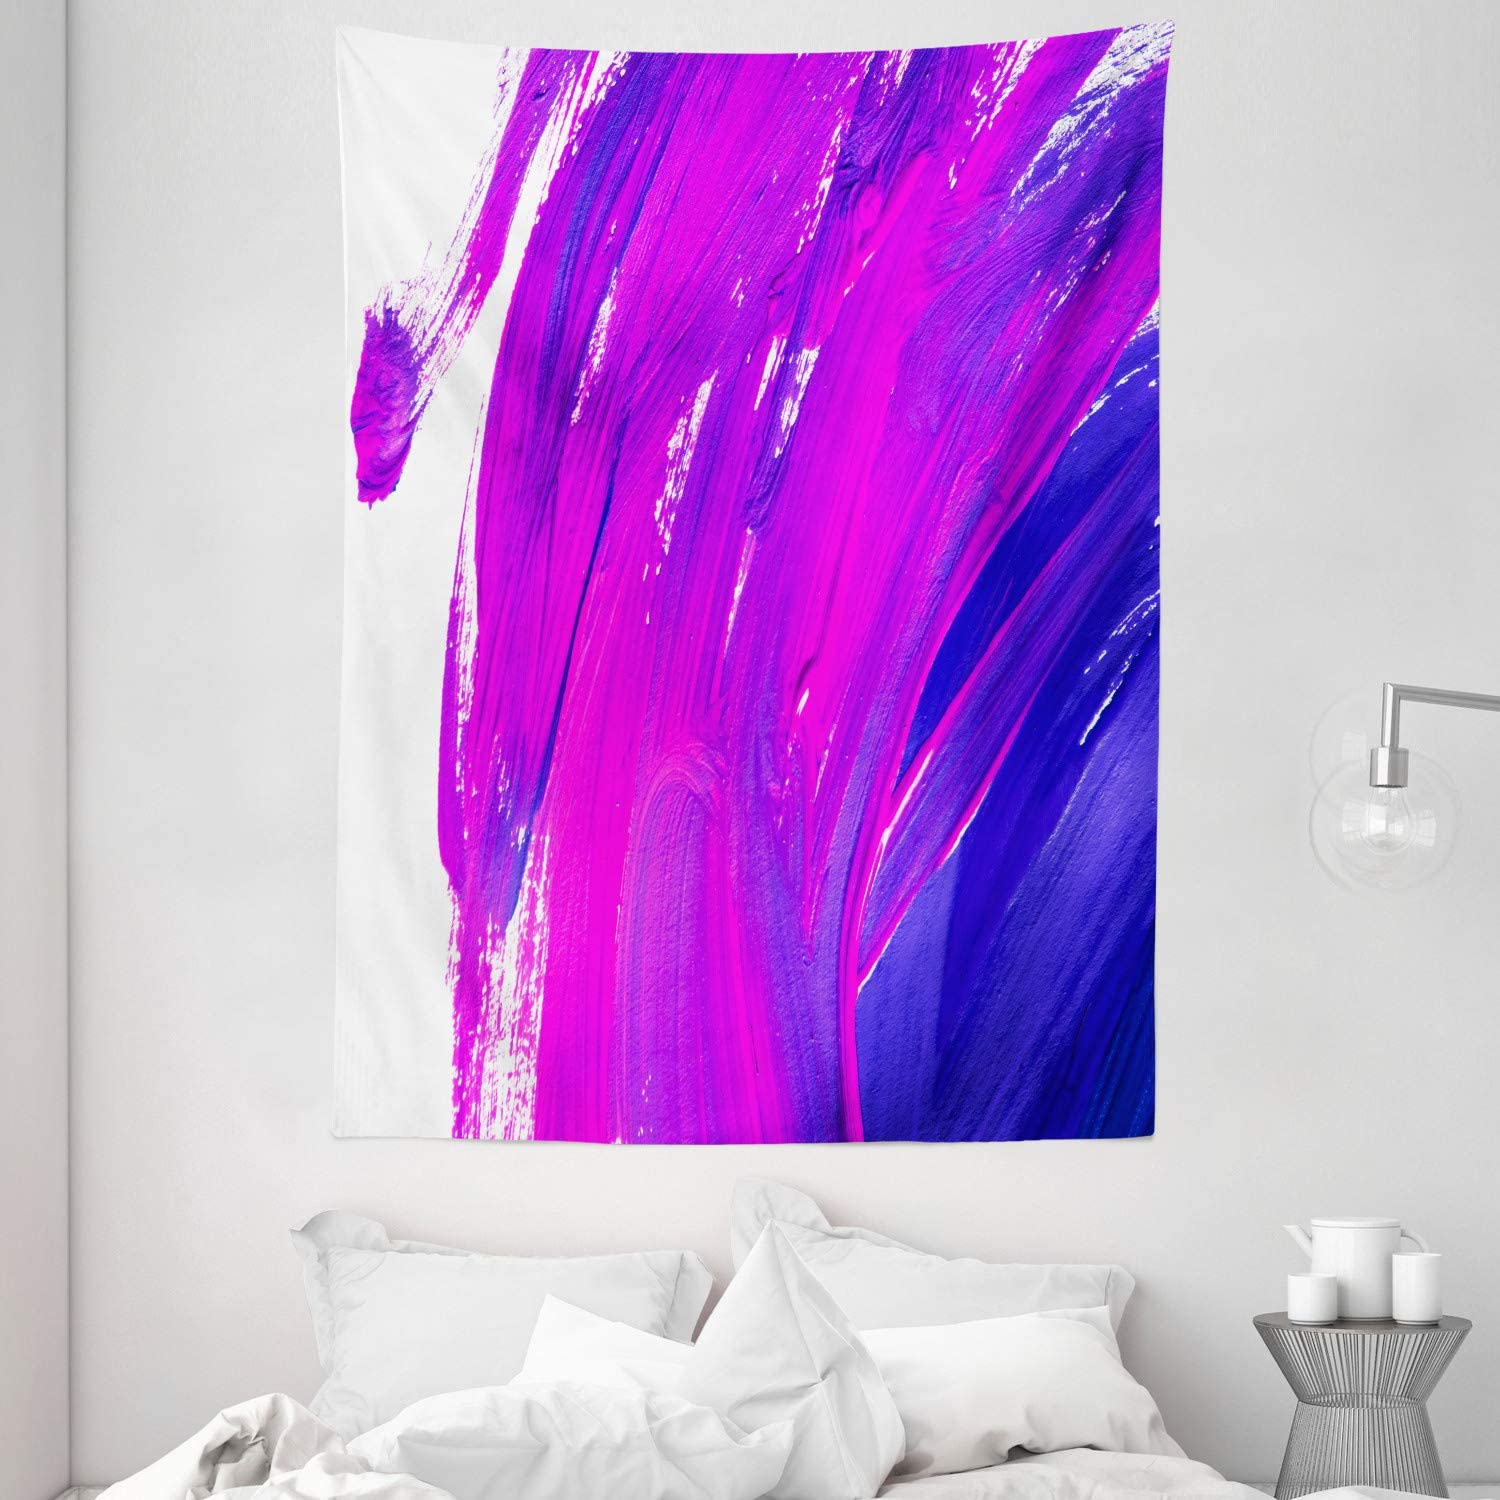 Amazon Com Ambesonne Purple Tapestry Simplistic Brush Strokes Of Oil Paint Art Theme Vibrant Color Effects Modern Design Wall Hanging For Bedroom Living Room Dorm Decor 60 X 80 Violet Blue Home